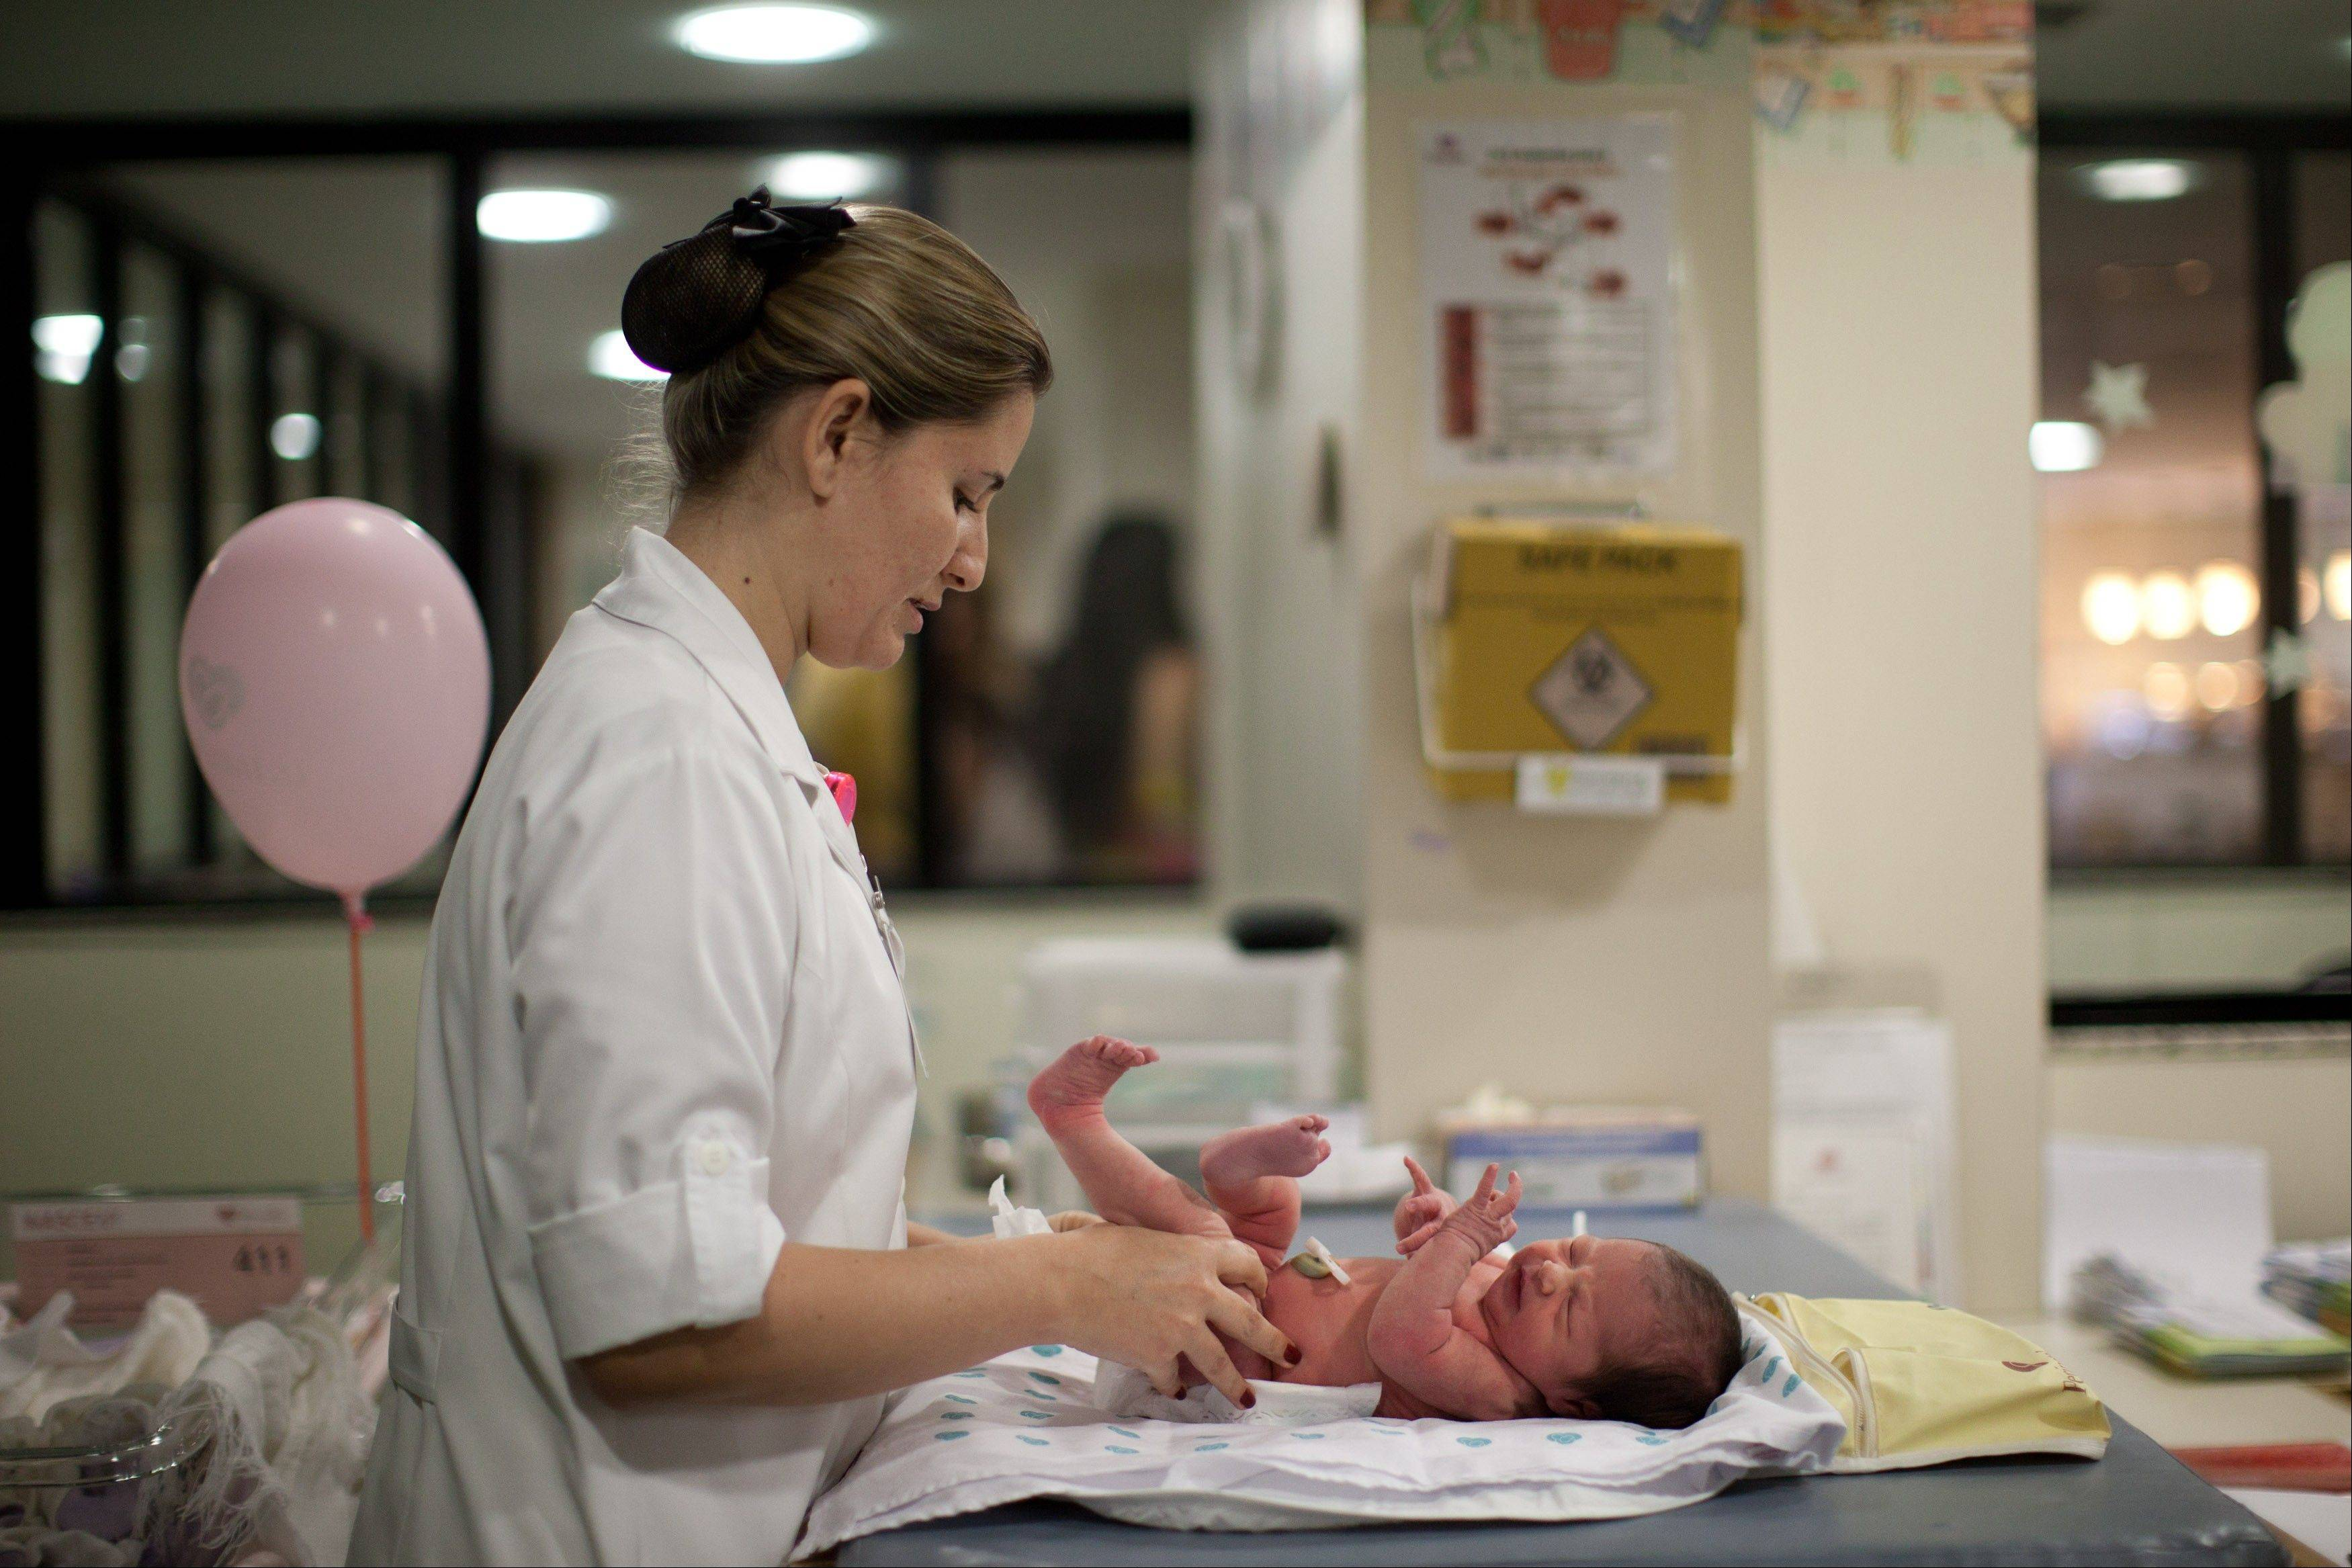 A nurse changes the diaper of a newborn baby at the Perinatal Clinic in Rio de Janeiro.